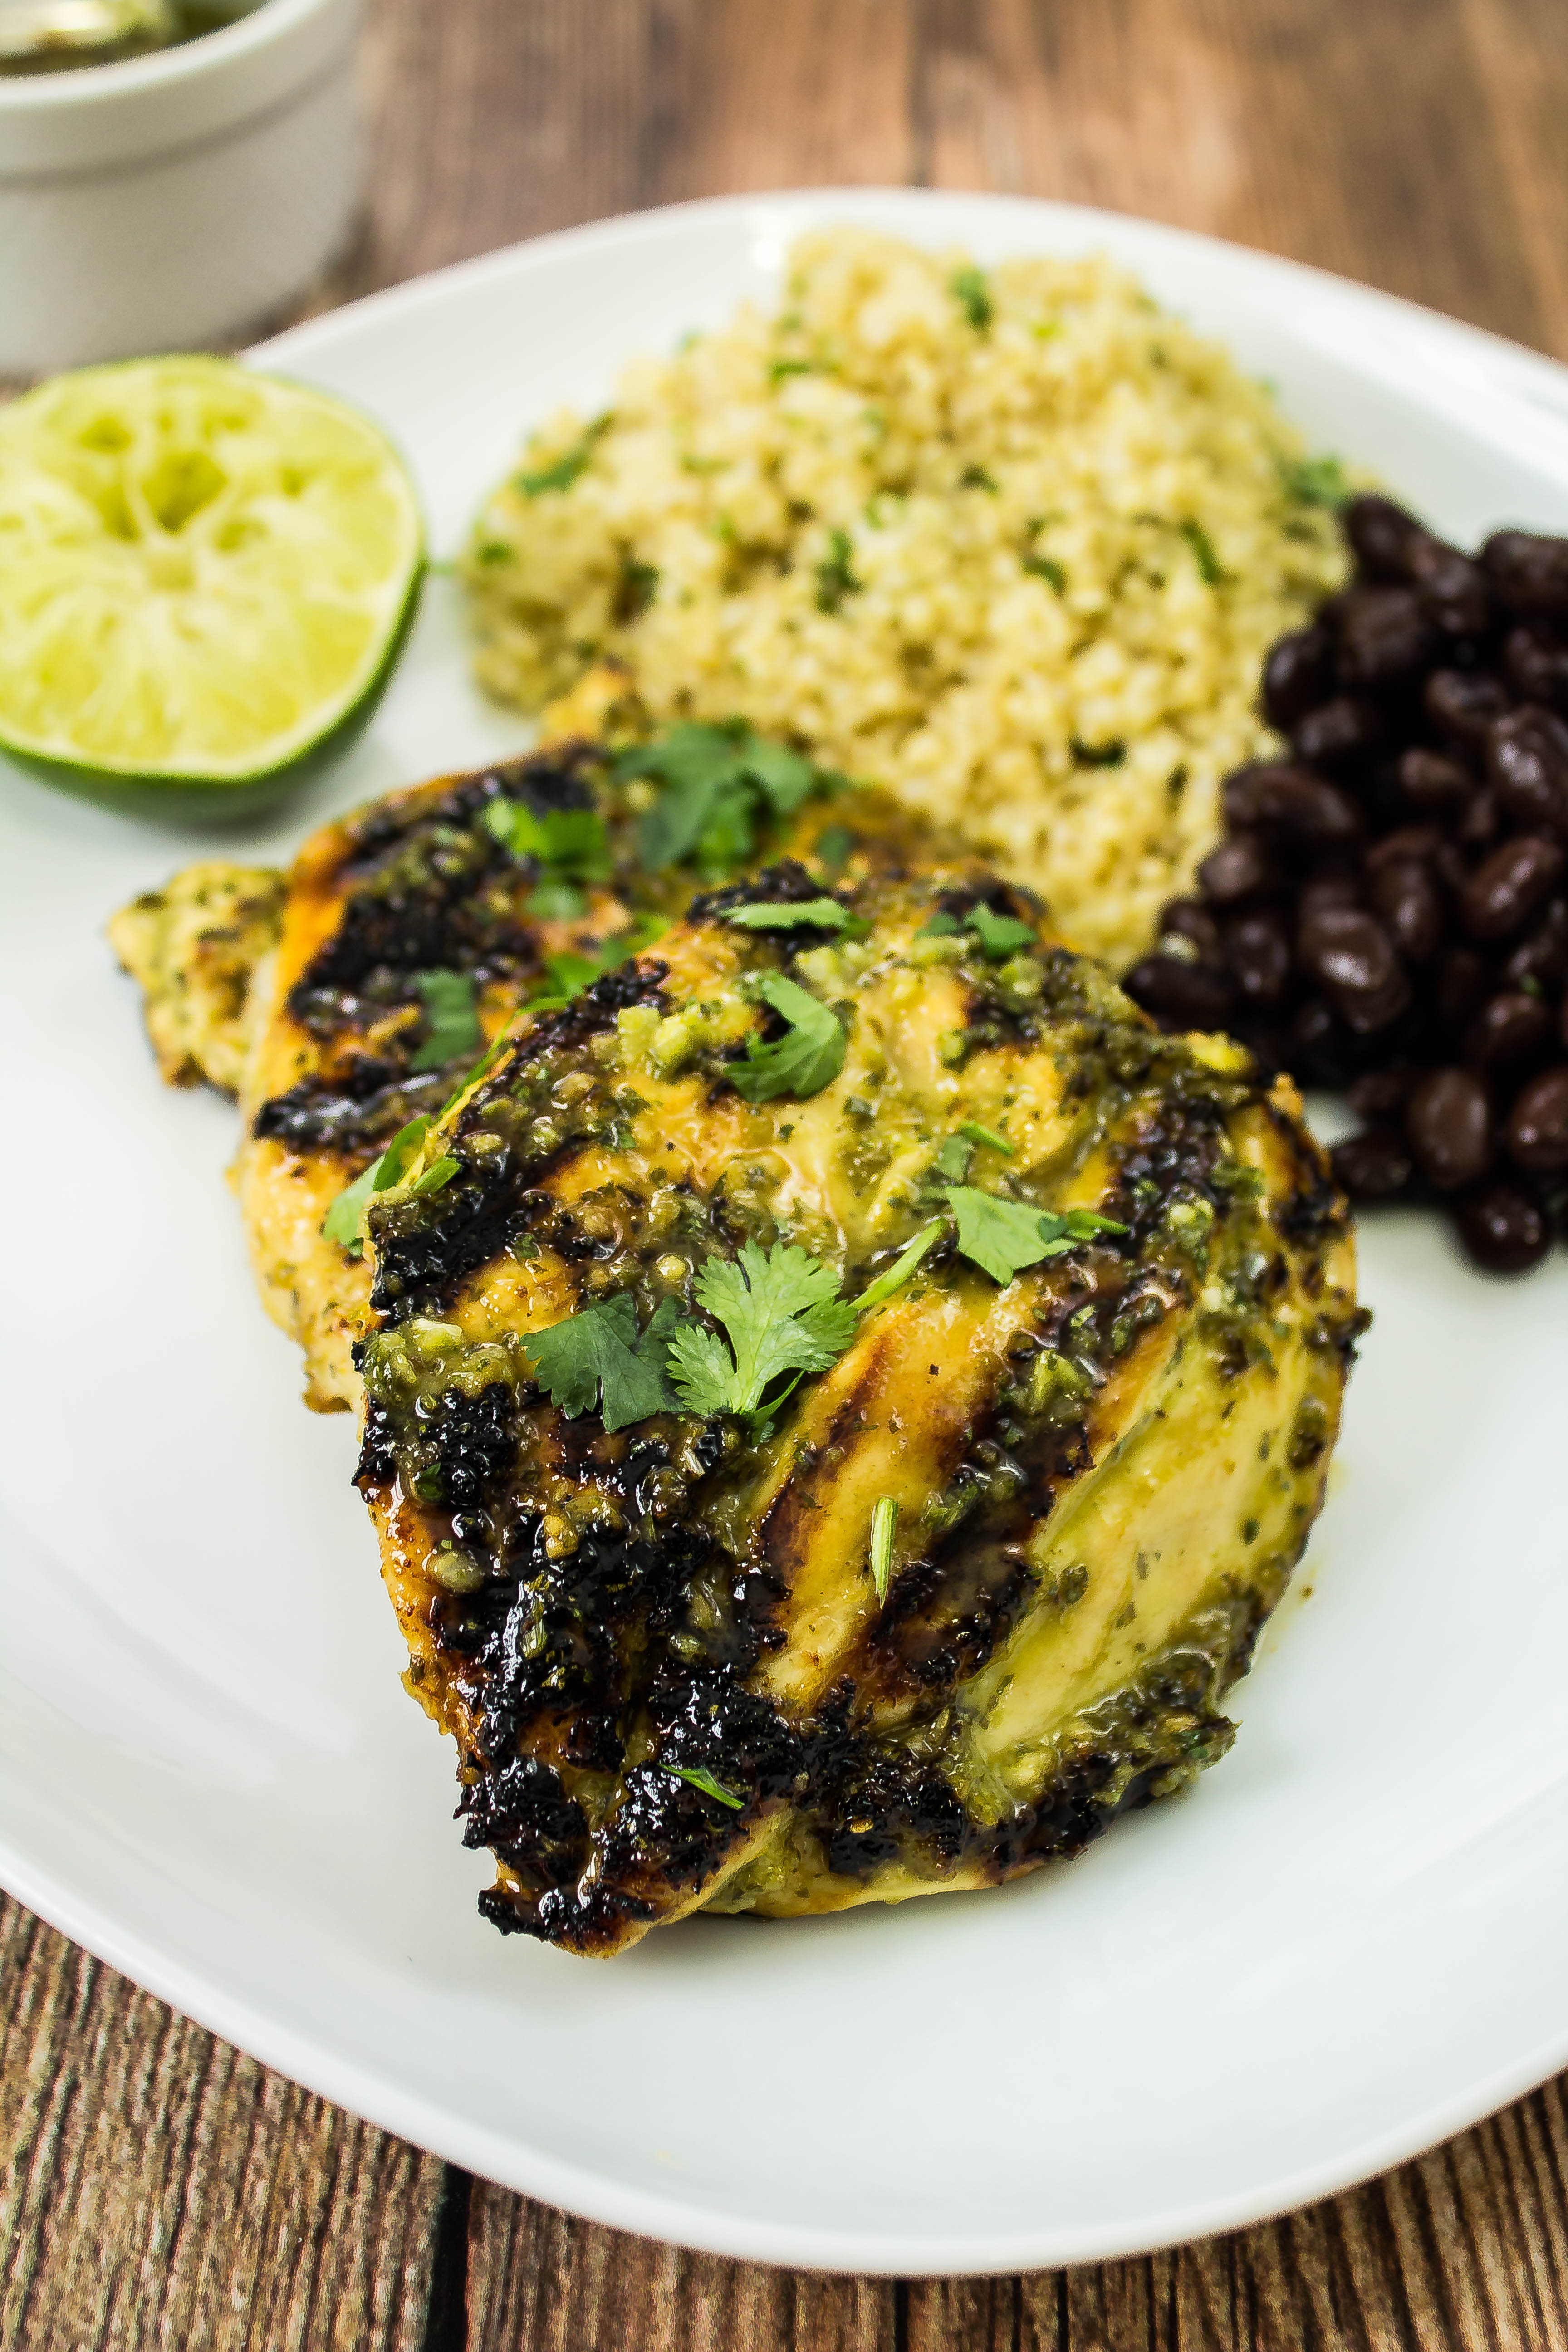 Grilled Cilantro Lime Chicken is grilled chicken coated in cilantro lime marinade is delicious served by itself, in a taco, or served in a burrito bowl. Weight Watchers friendly recipe. www.bitesofflavor.com